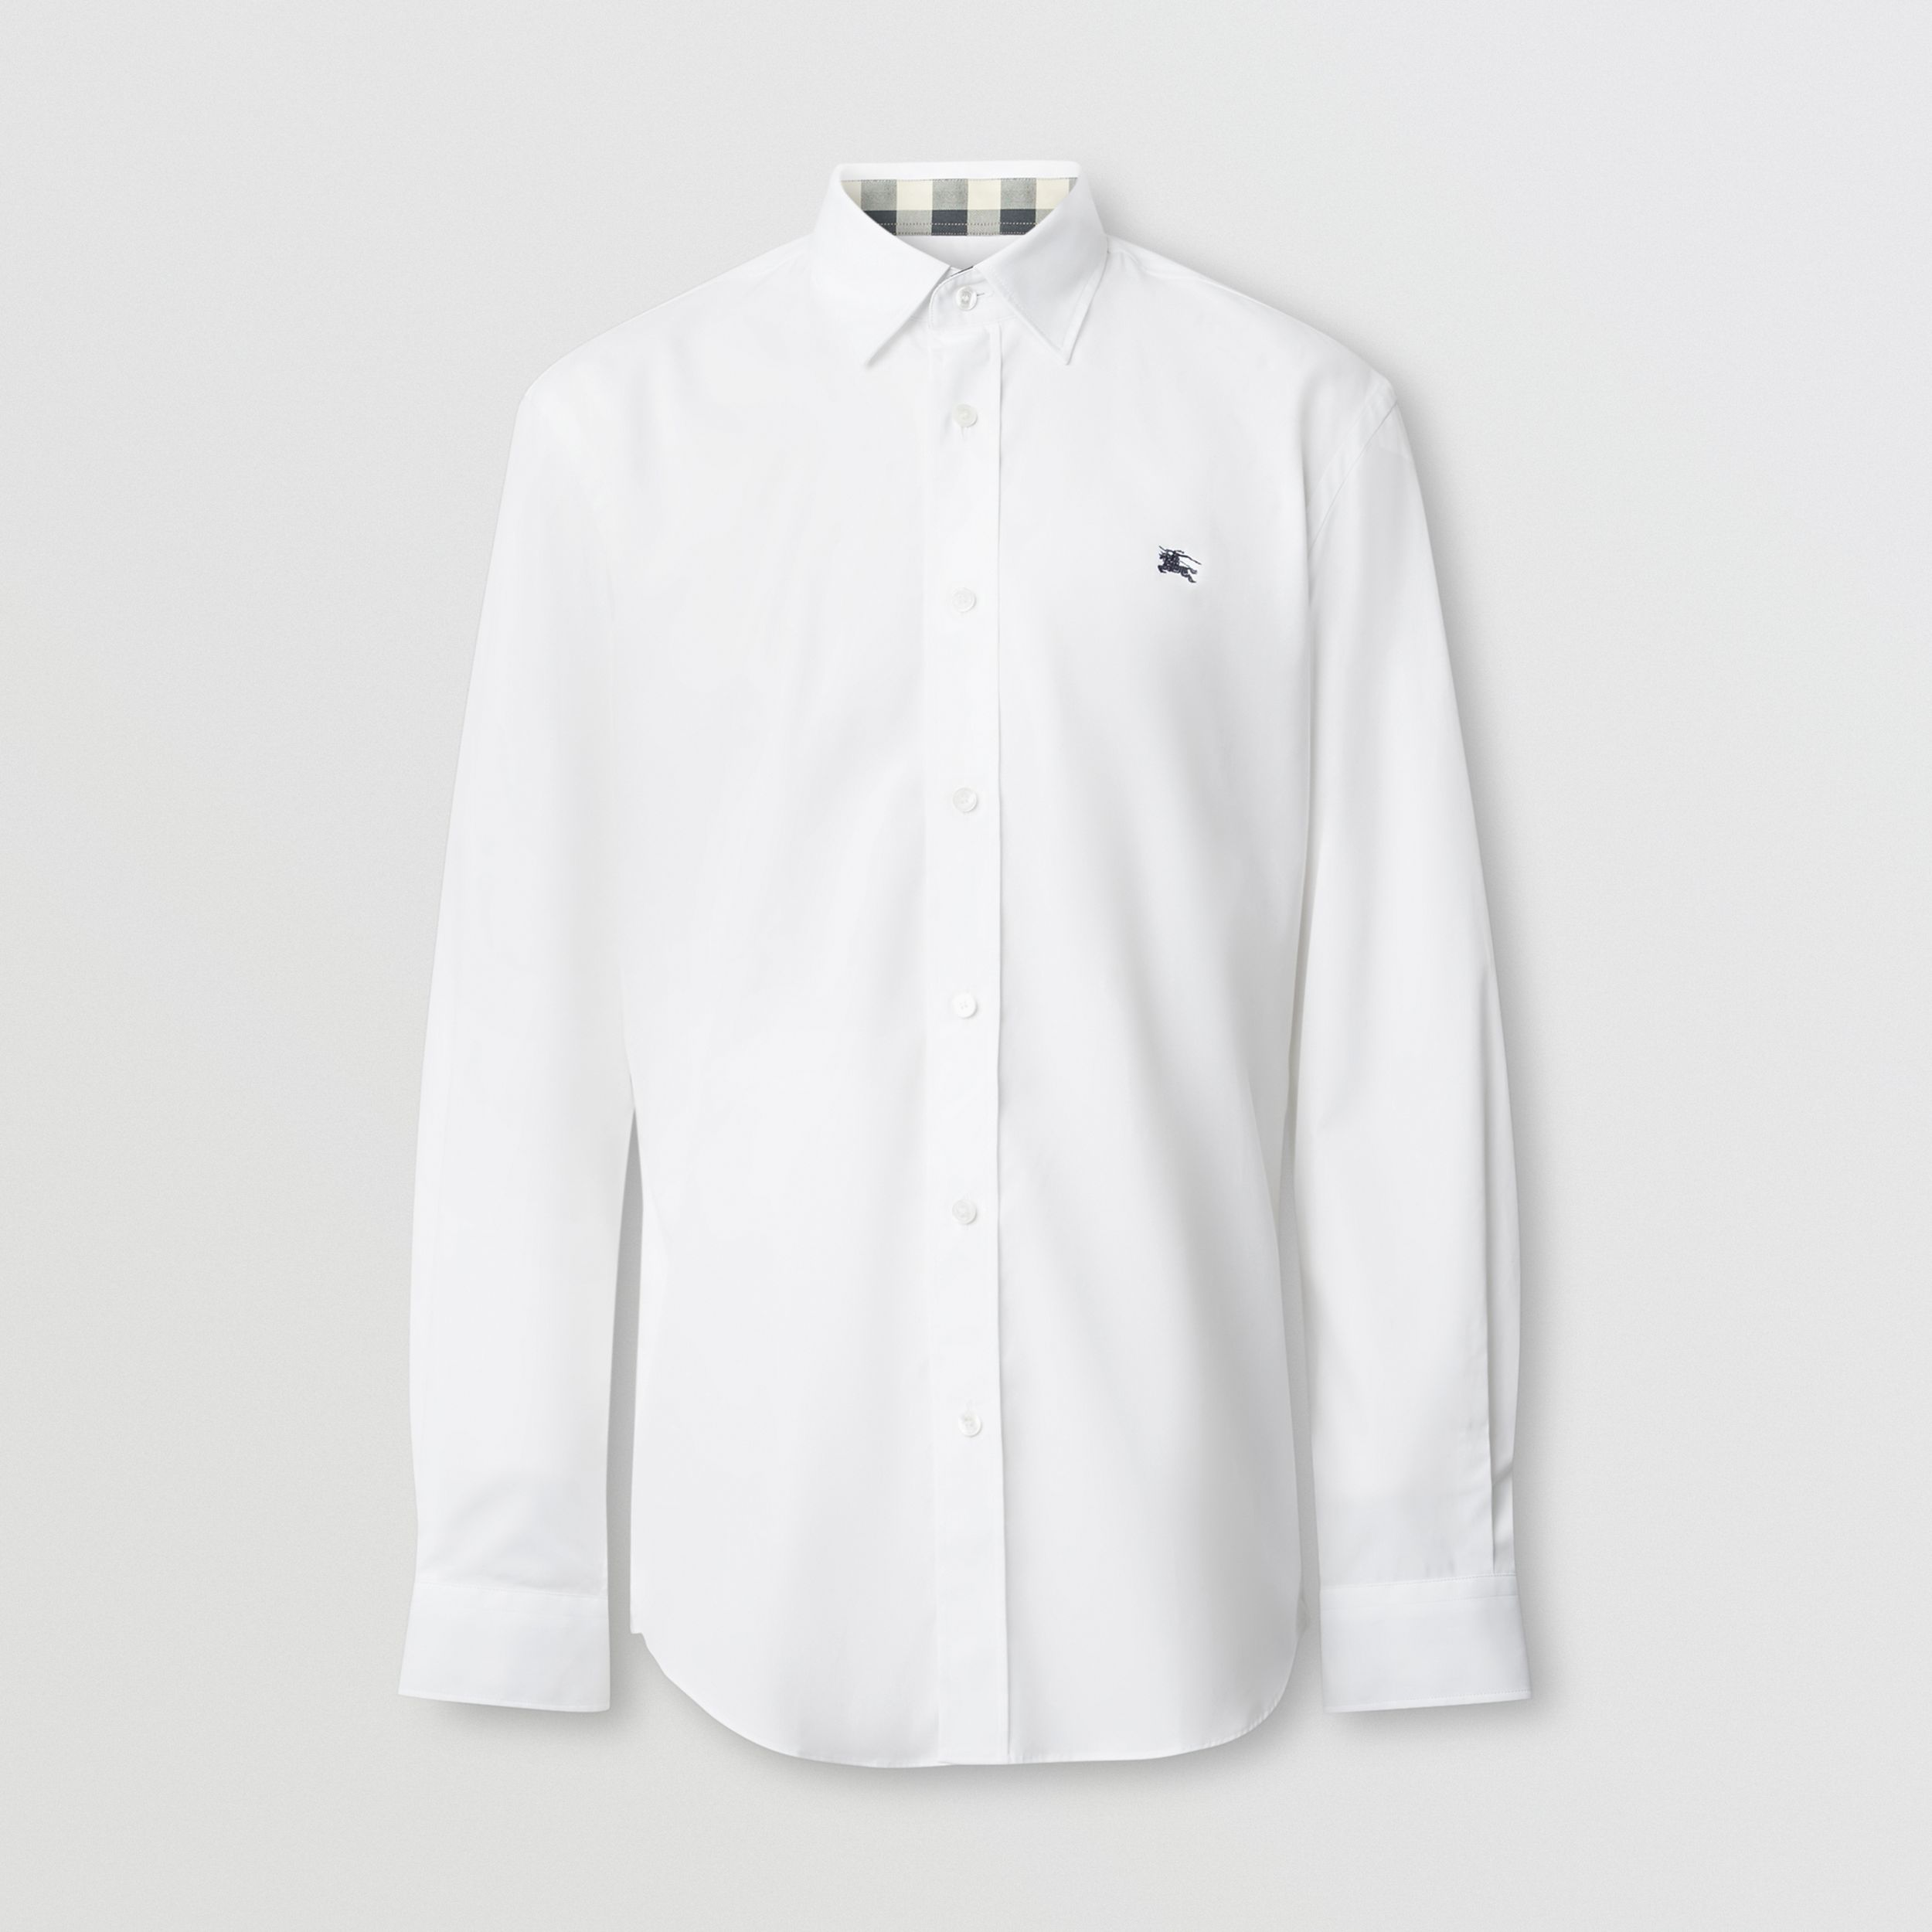 Embroidered EKD Stretch Cotton Poplin Shirt in White - Men | Burberry Hong Kong S.A.R. - 1